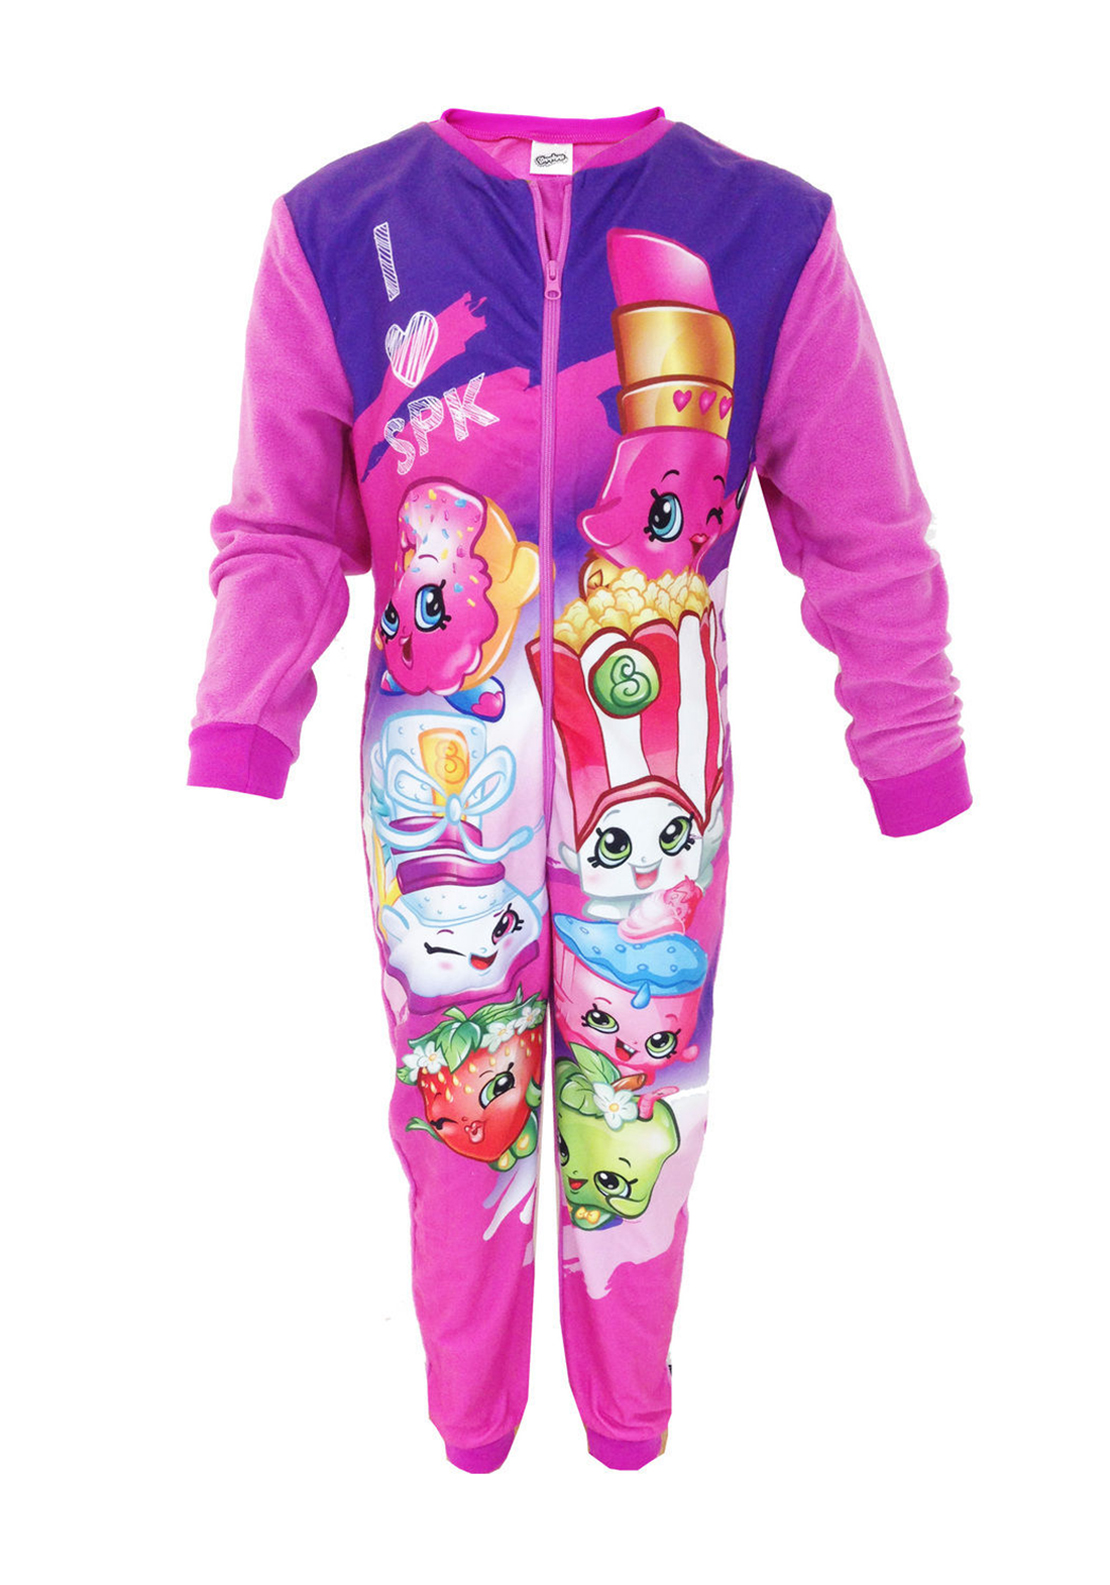 Shopkins Girls Onsie Sleepsuit, Pink